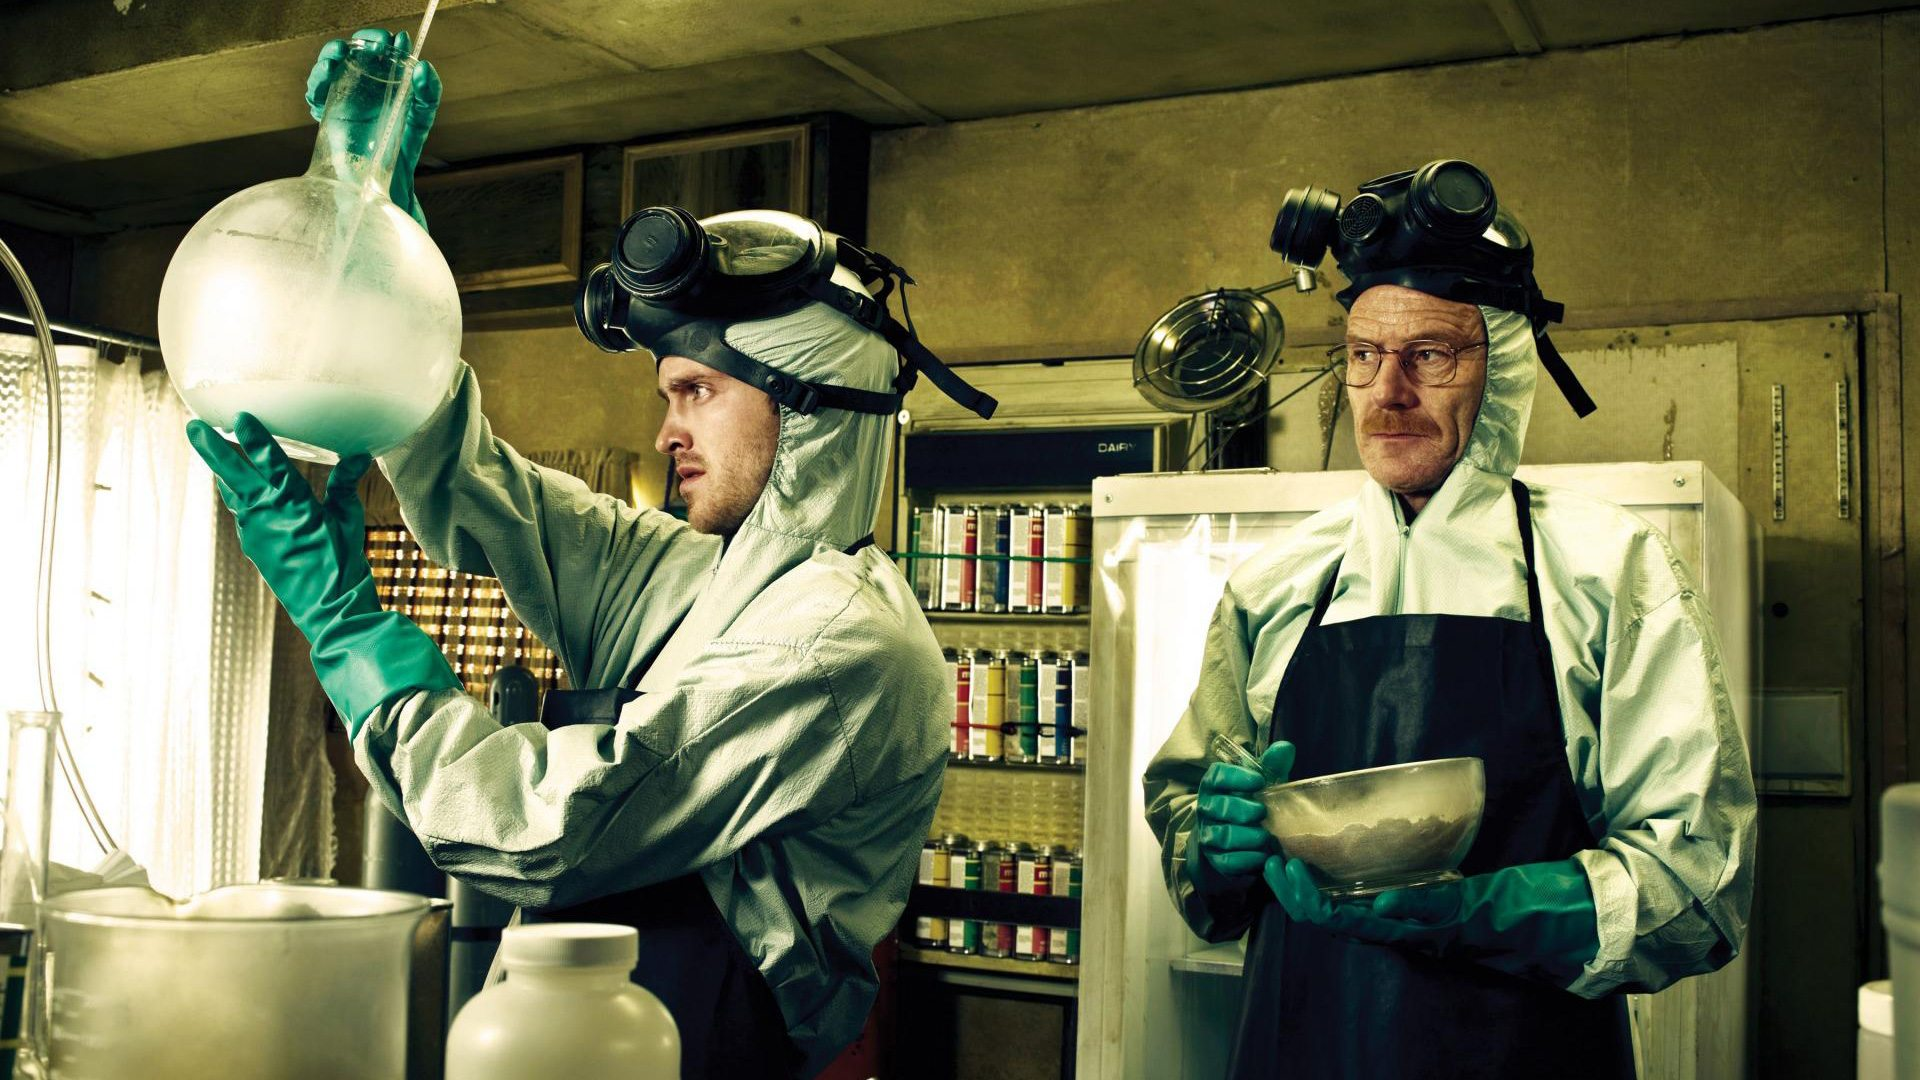 E se ci fossimo noi nel laboratorio di Breaking Bad?